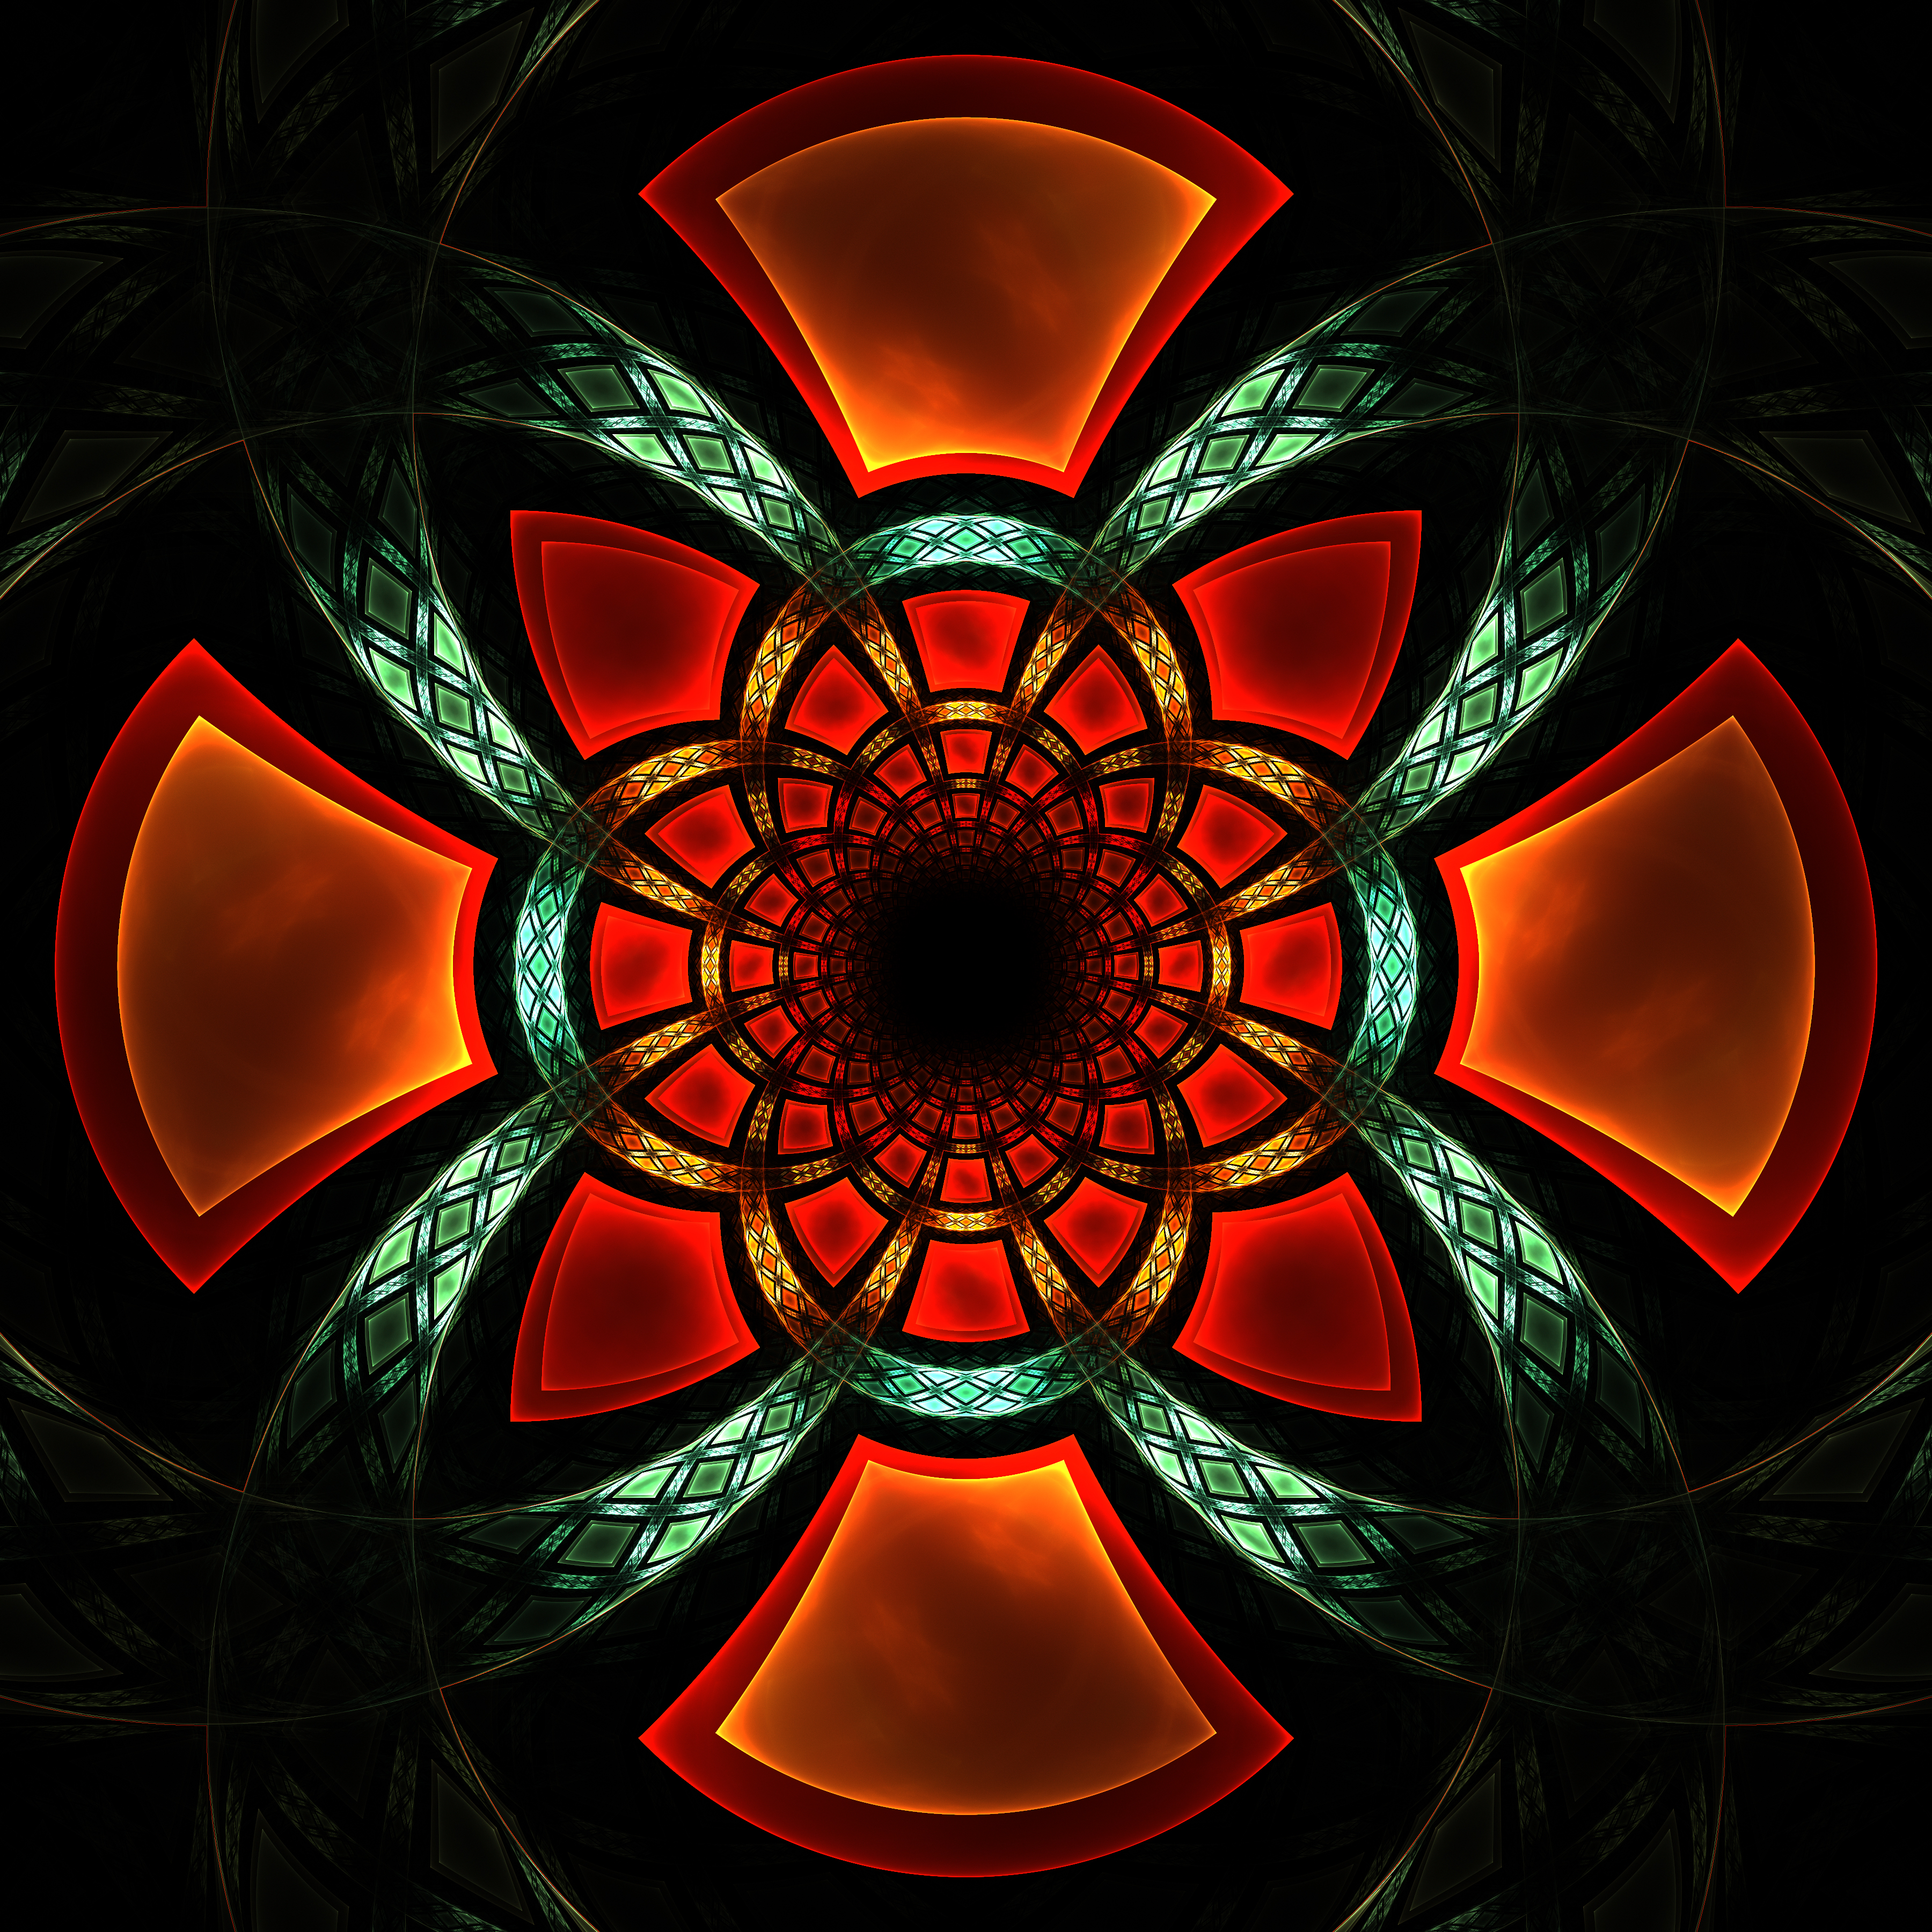 108029 download wallpaper Abstract, Fractal, Symmetry, Glow, Pattern screensavers and pictures for free